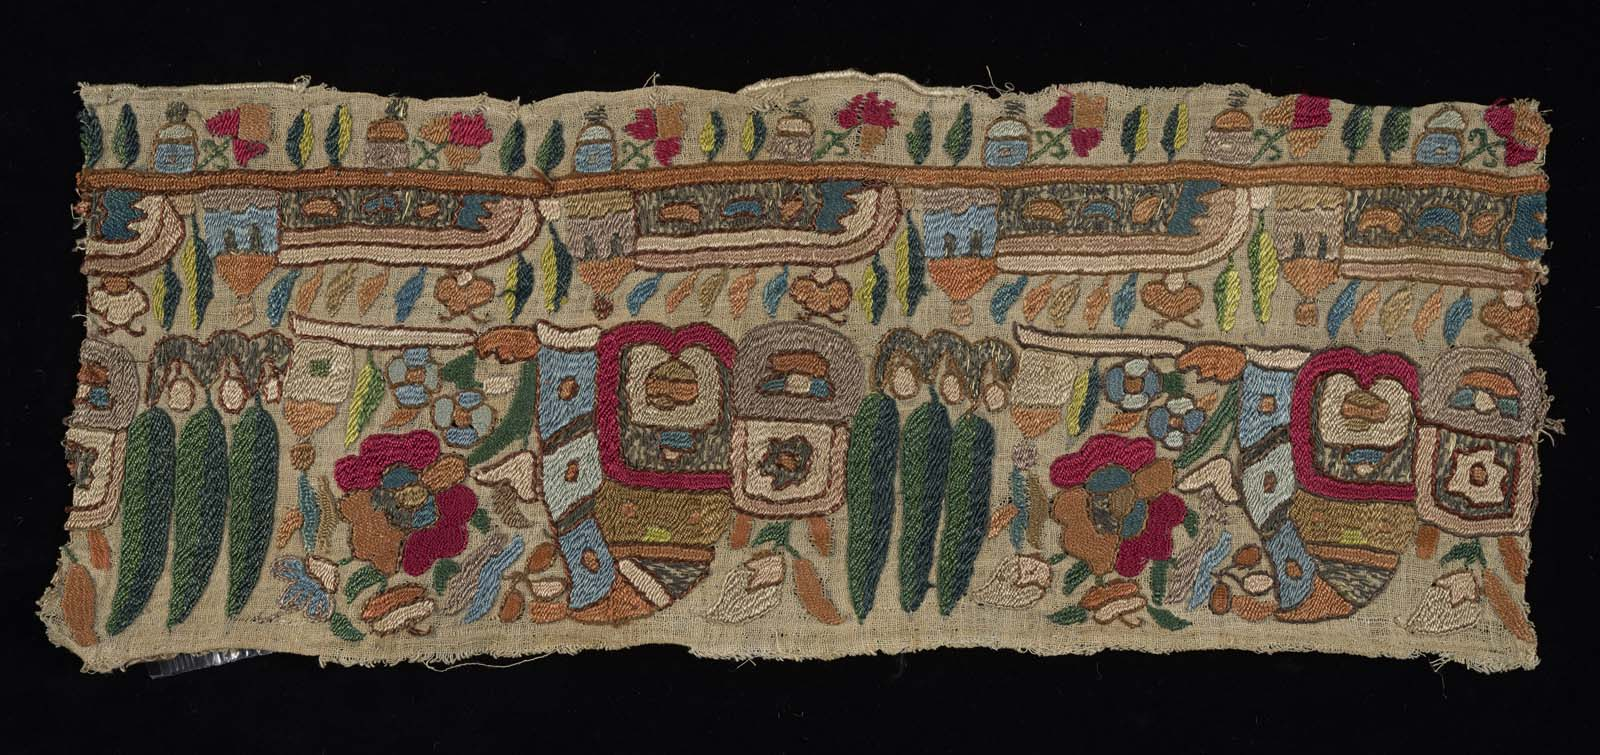 a photo of a piece of colourfully embroidered fabric